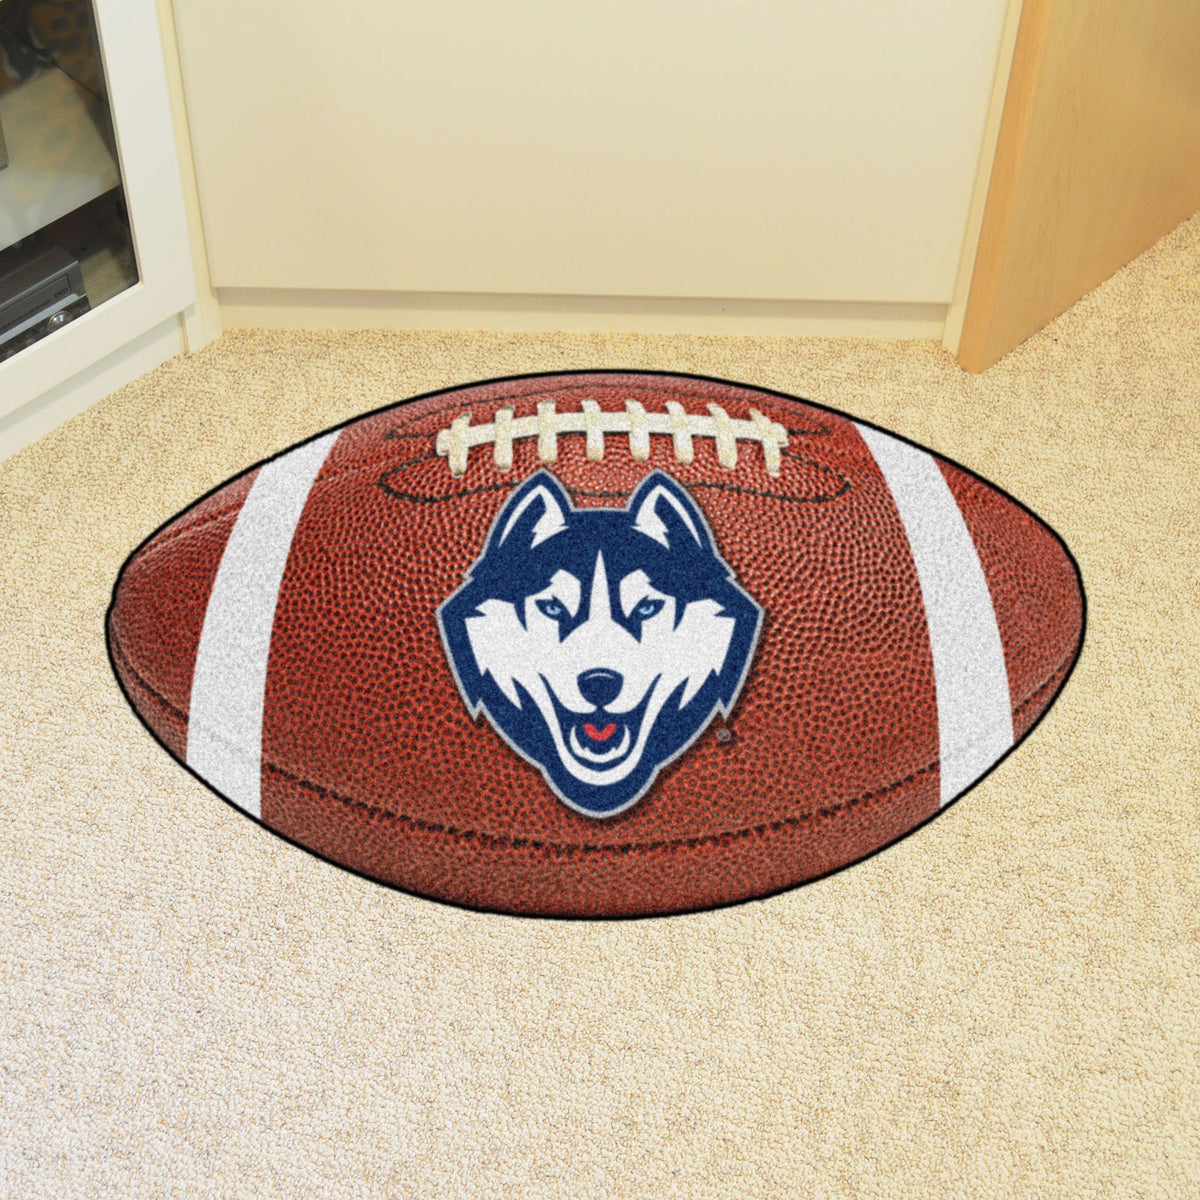 Collegiate - Football Mat: A - K Collegiate Mats, Rectangular Mats, Football Mat, Collegiate, Home Fan Mats Connecticut